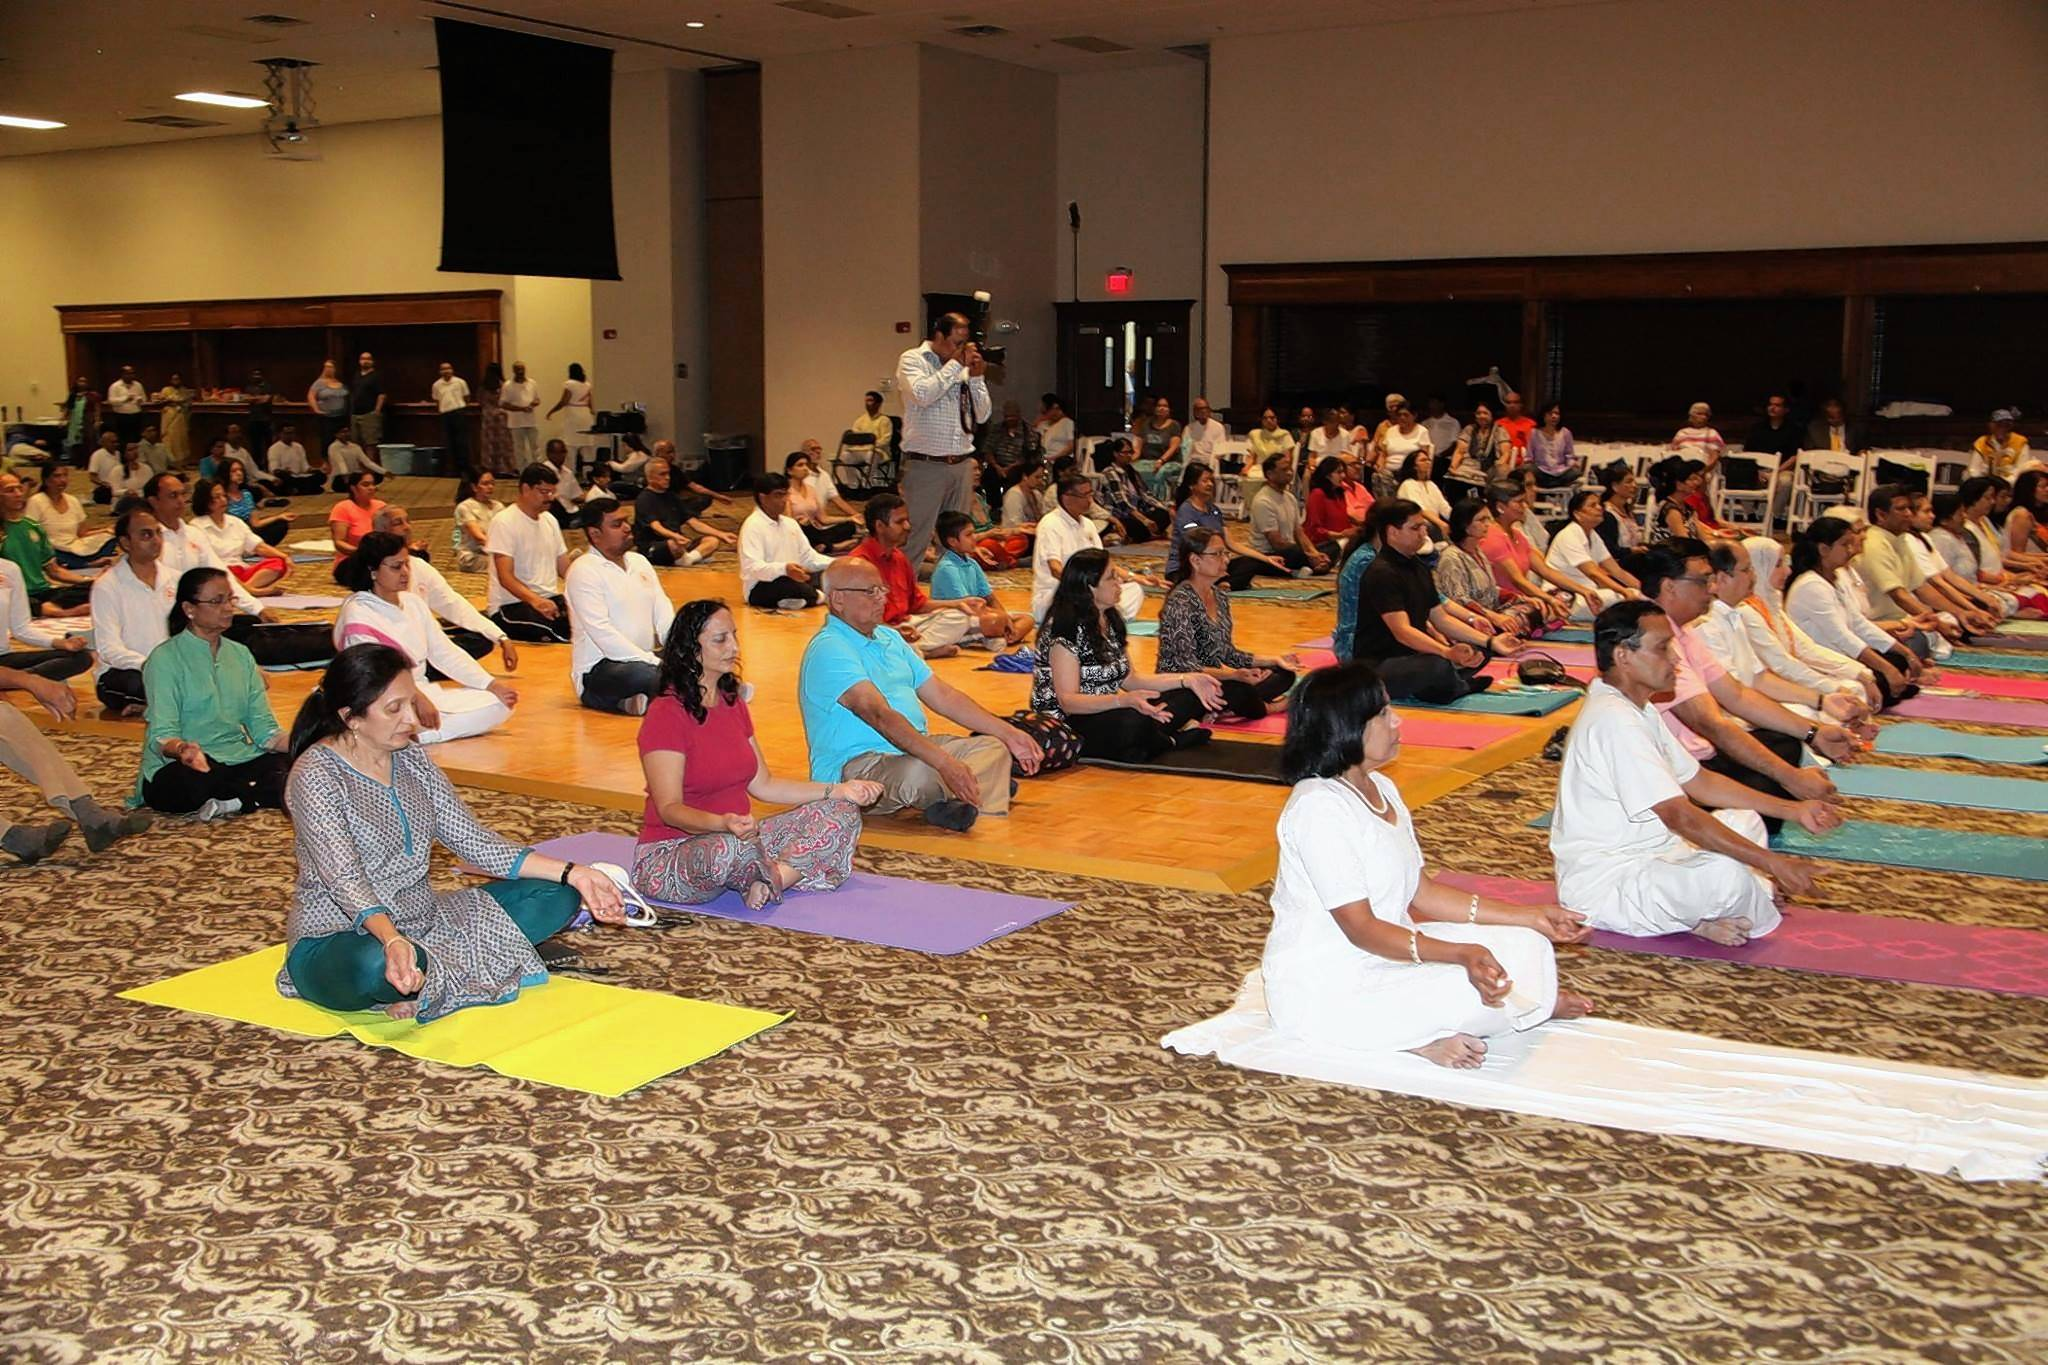 Organizers expect up to 3,000 people to gather June 24 at Naperville Yard for a celebration of International Yoga Day, like this one last year in Sandwich.